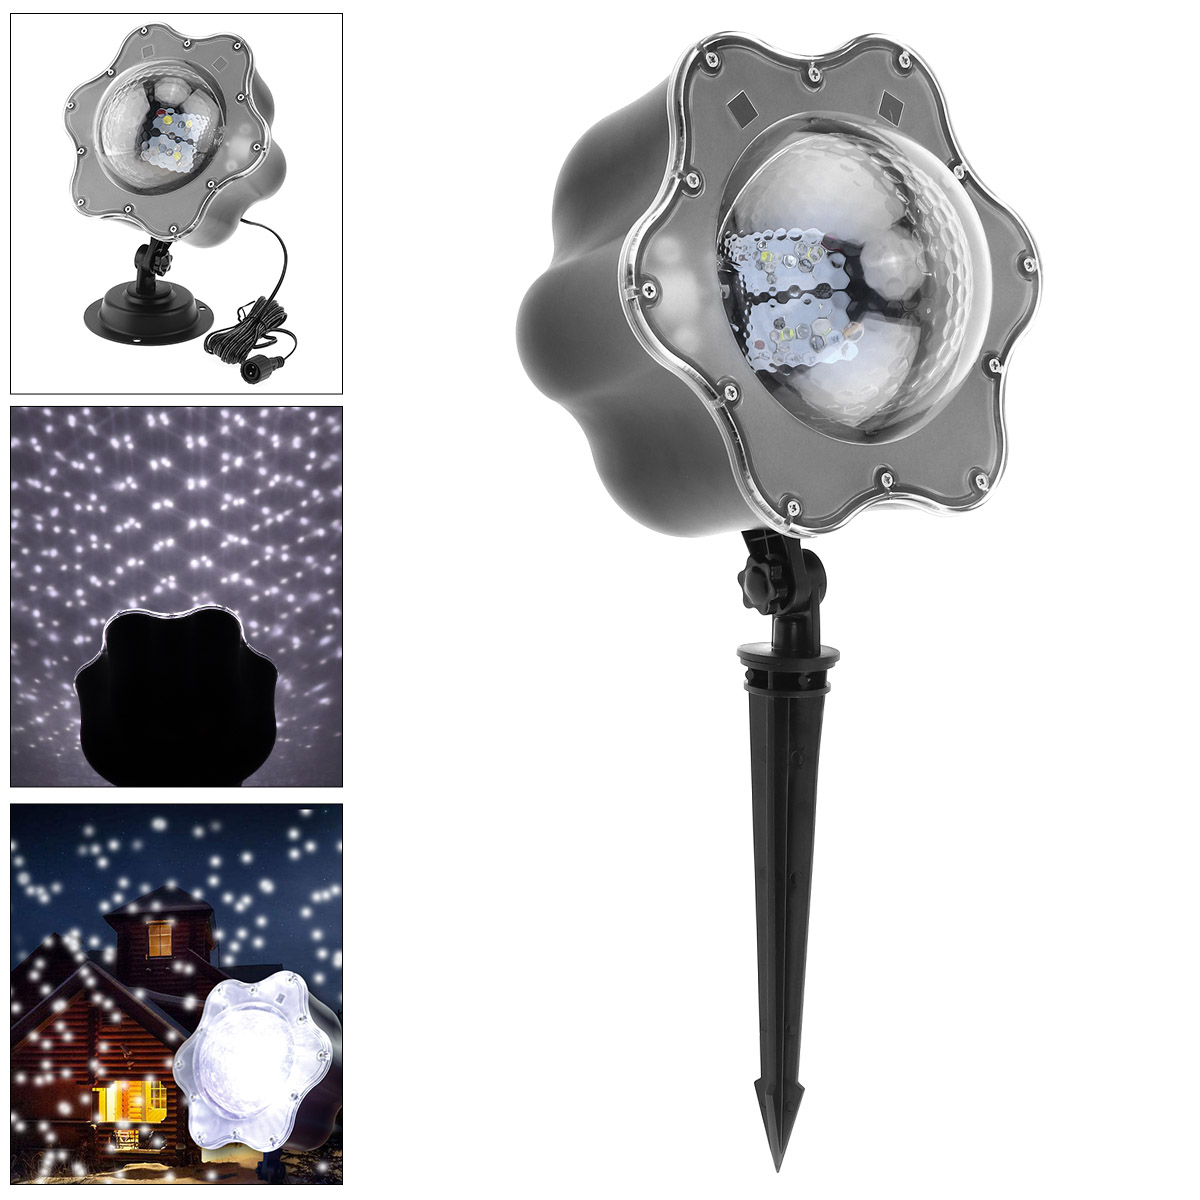 4W Indoor / Outdoor Waterproof Snow Projector Lamp with Remote Control and Ground Stake for Christmas / Holiday Decoration